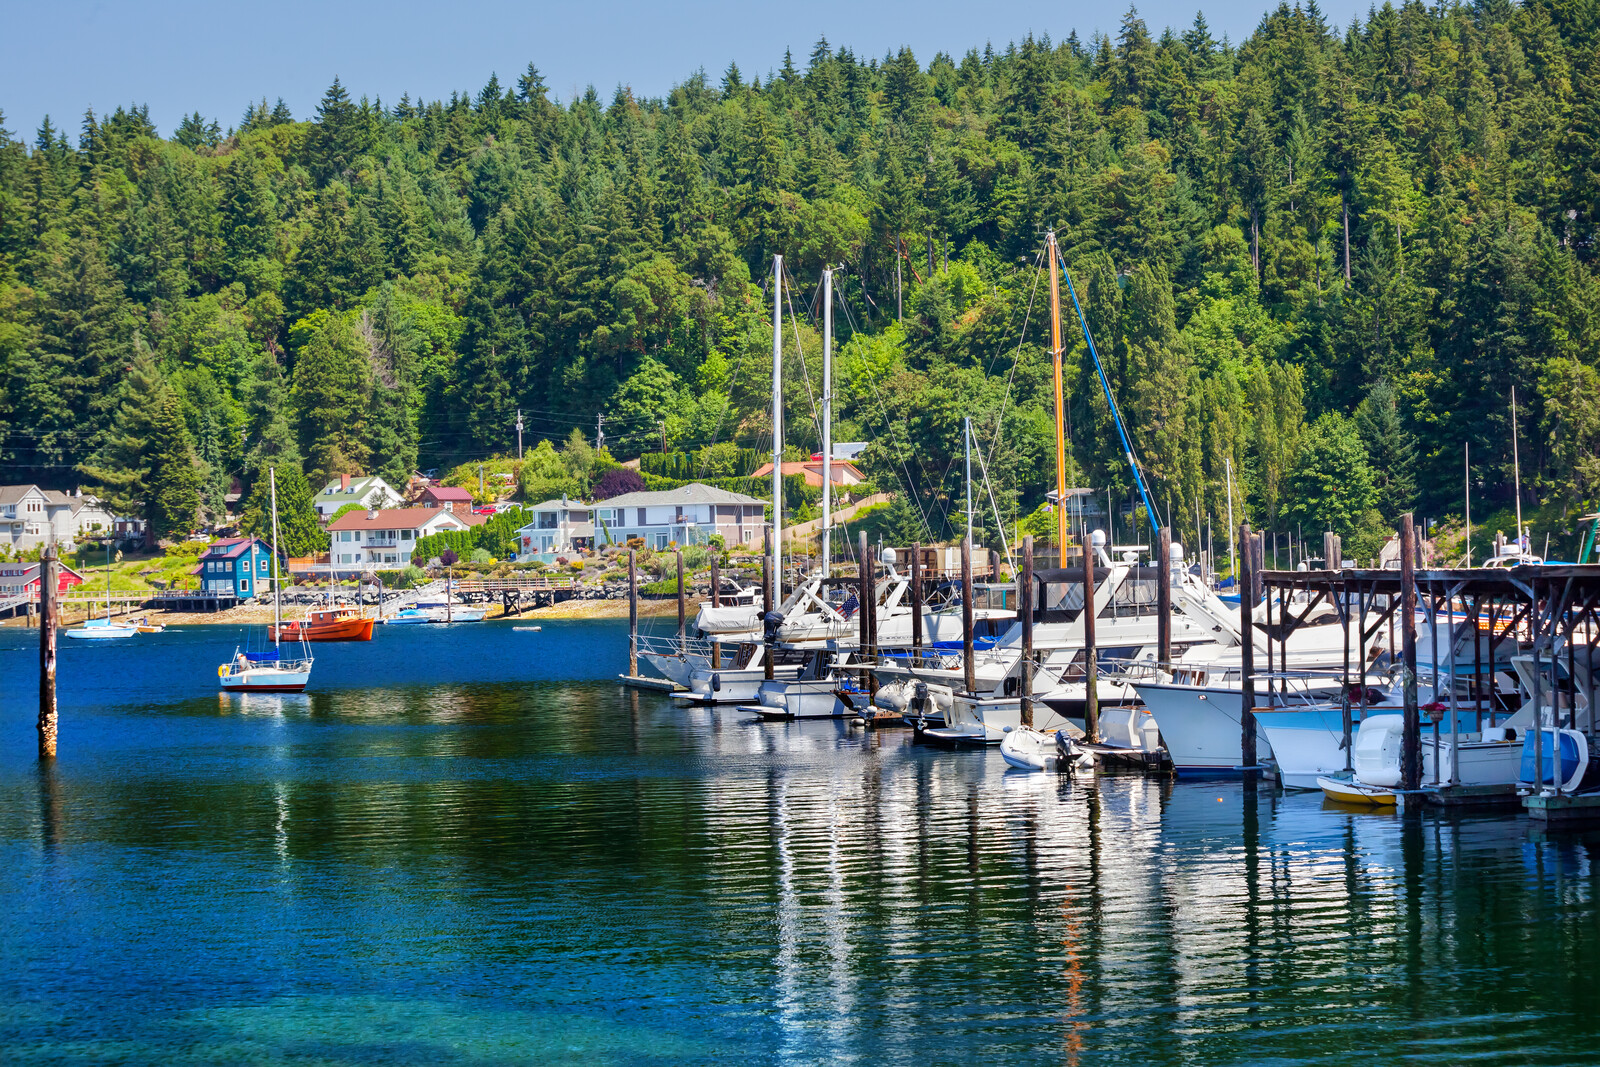 Docks in Gig Harbor Washington, white sailboats lining the harbor with housing lining the houses backed by green pines